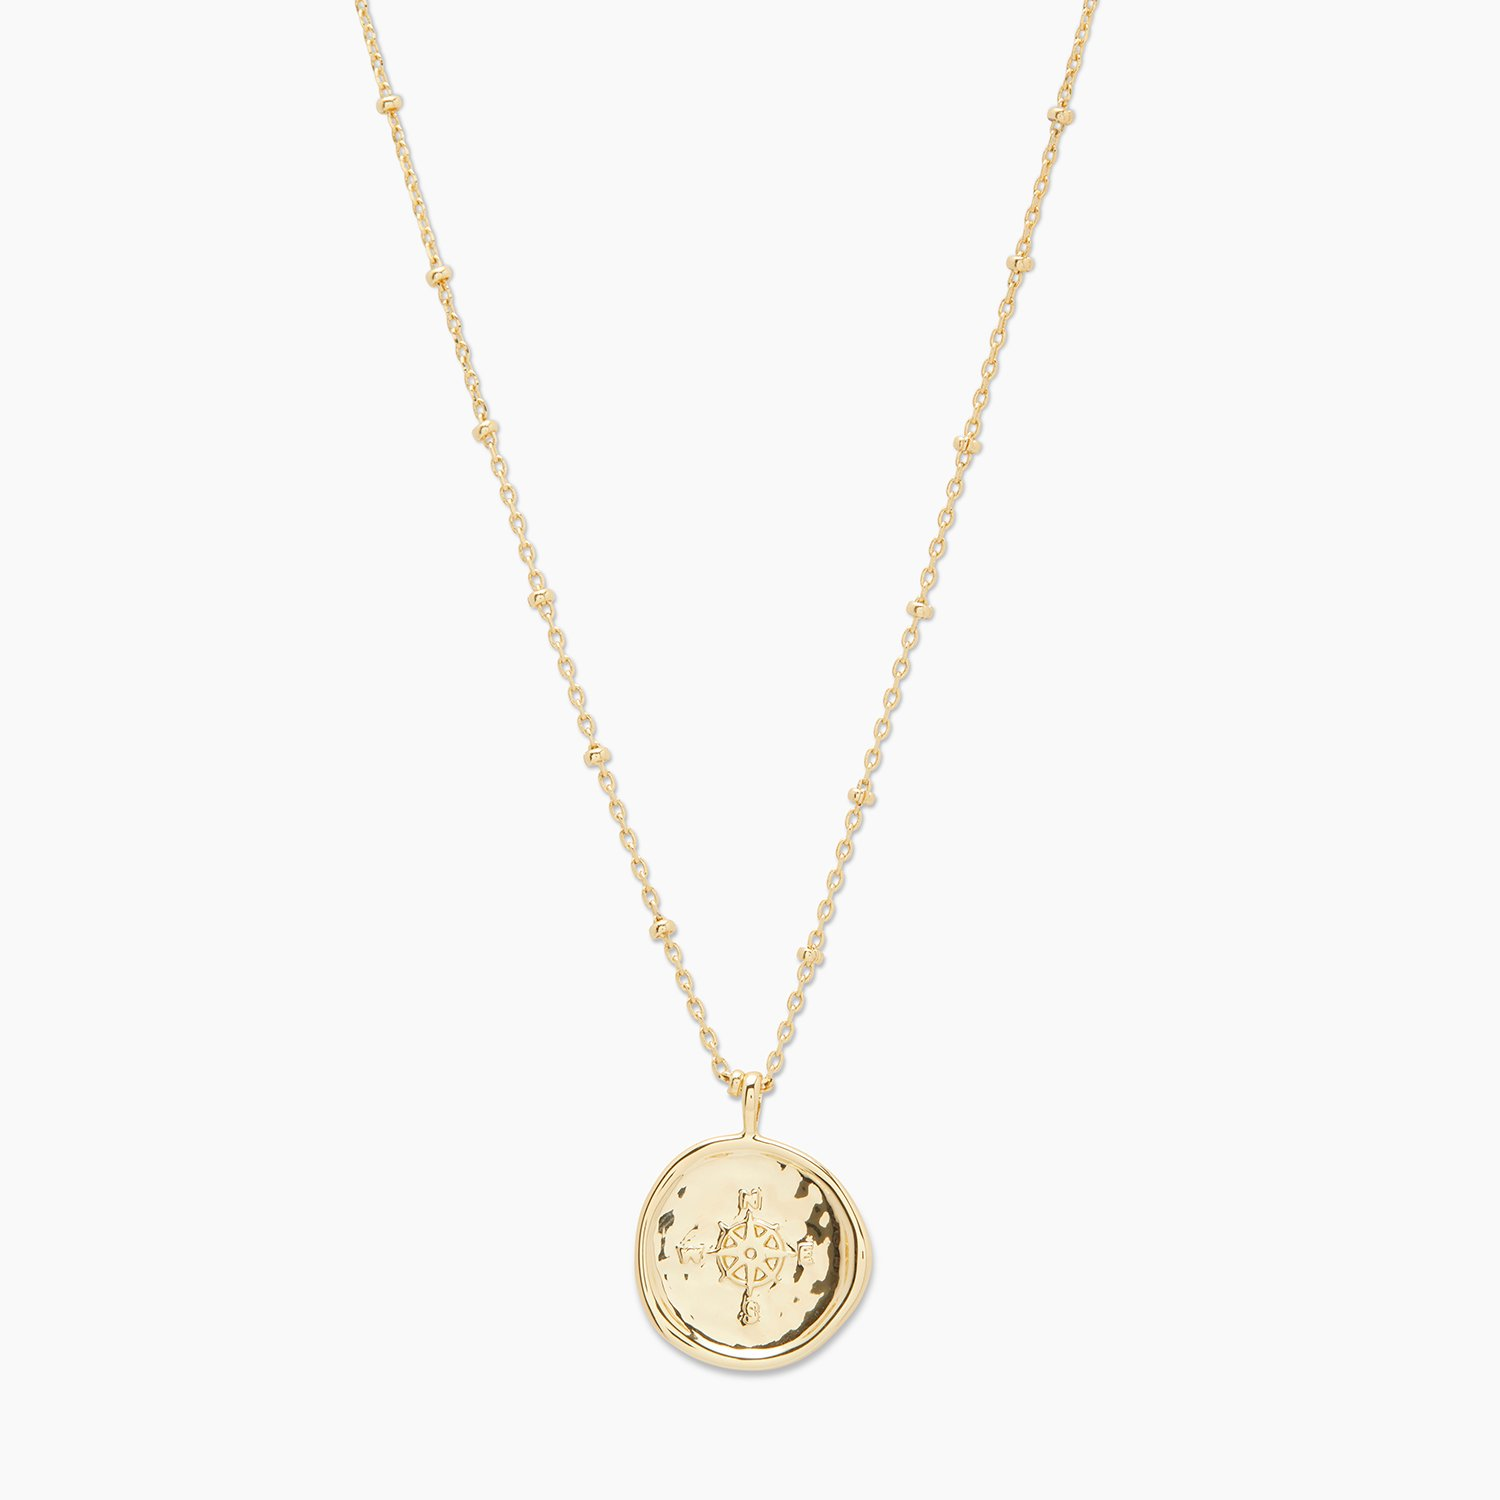 Gorjana gold coin necklace